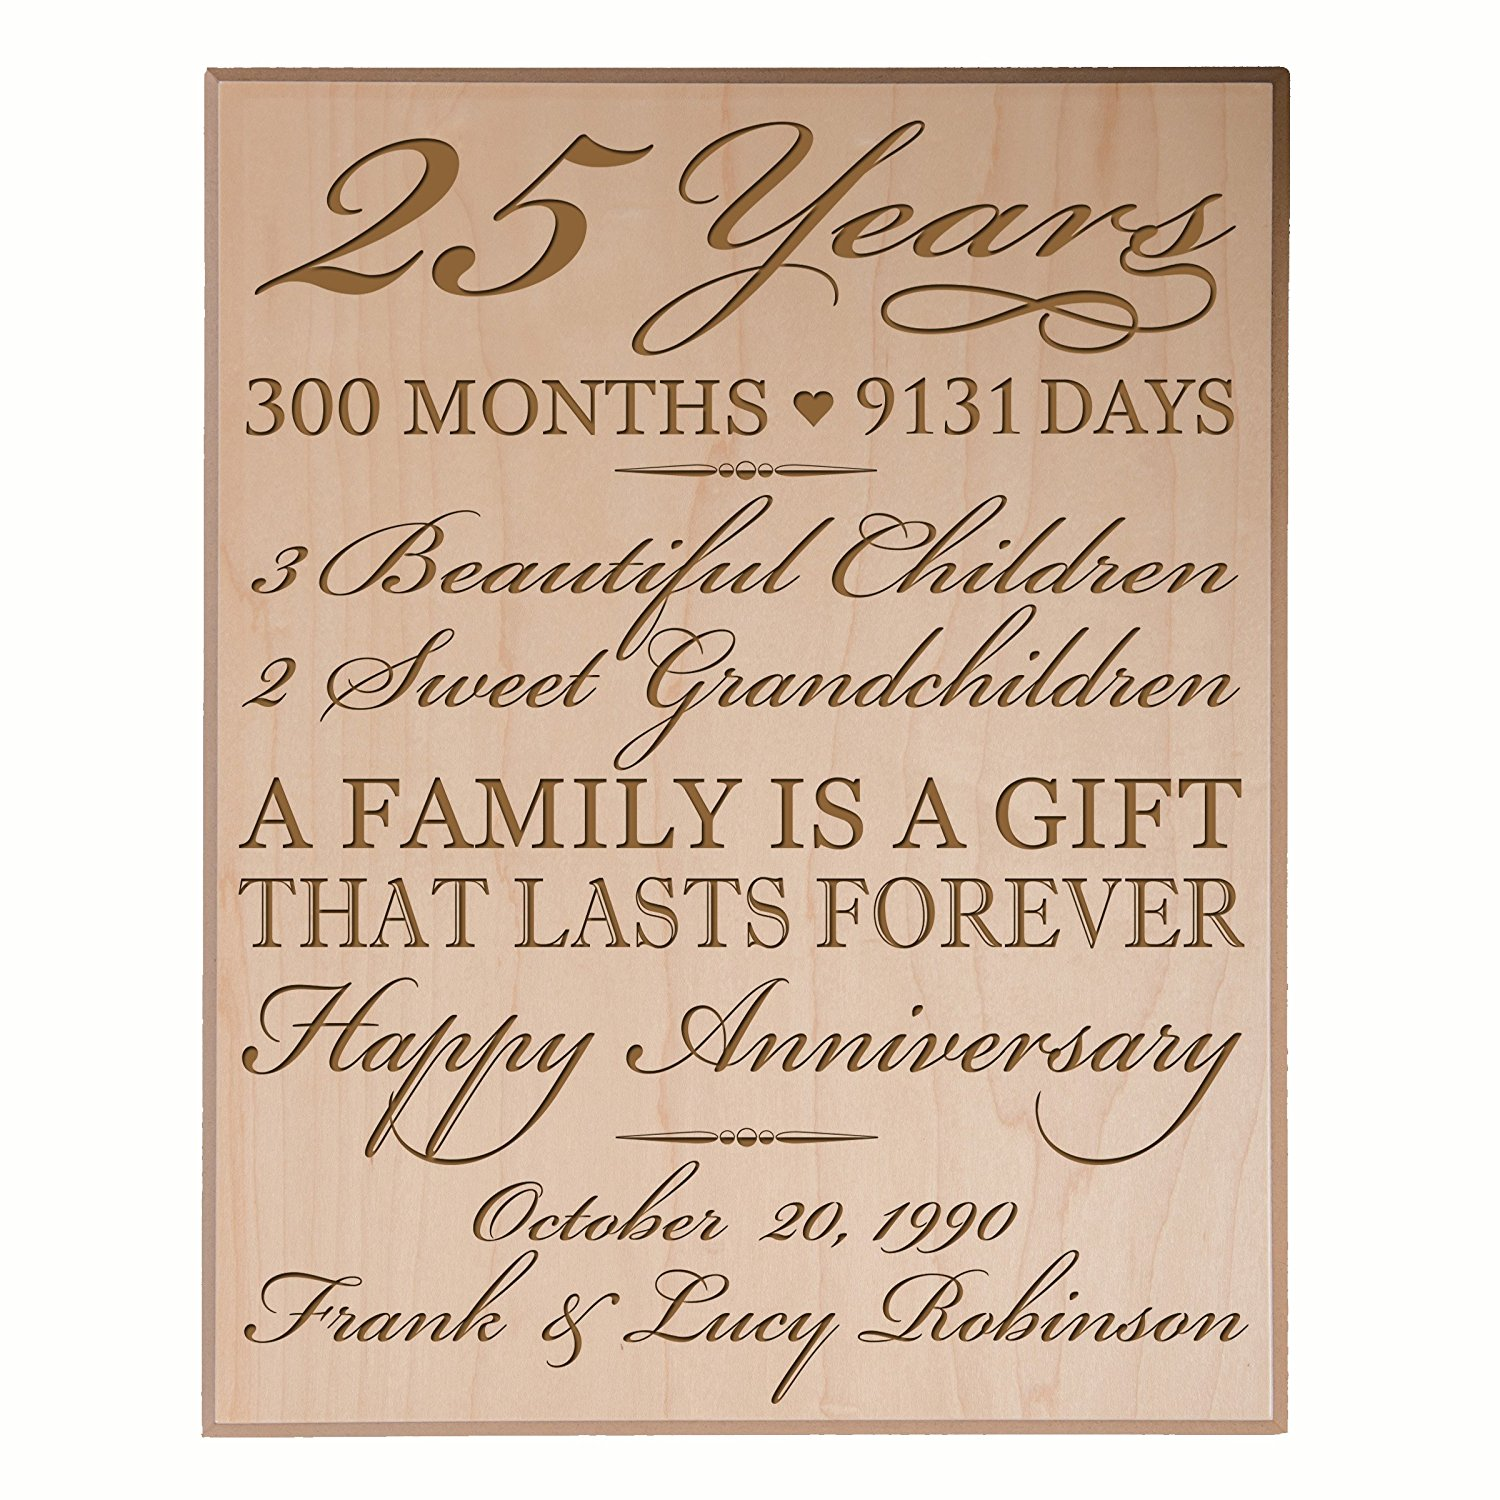 buy personalized 25th anniversary gifts for him her couple parents